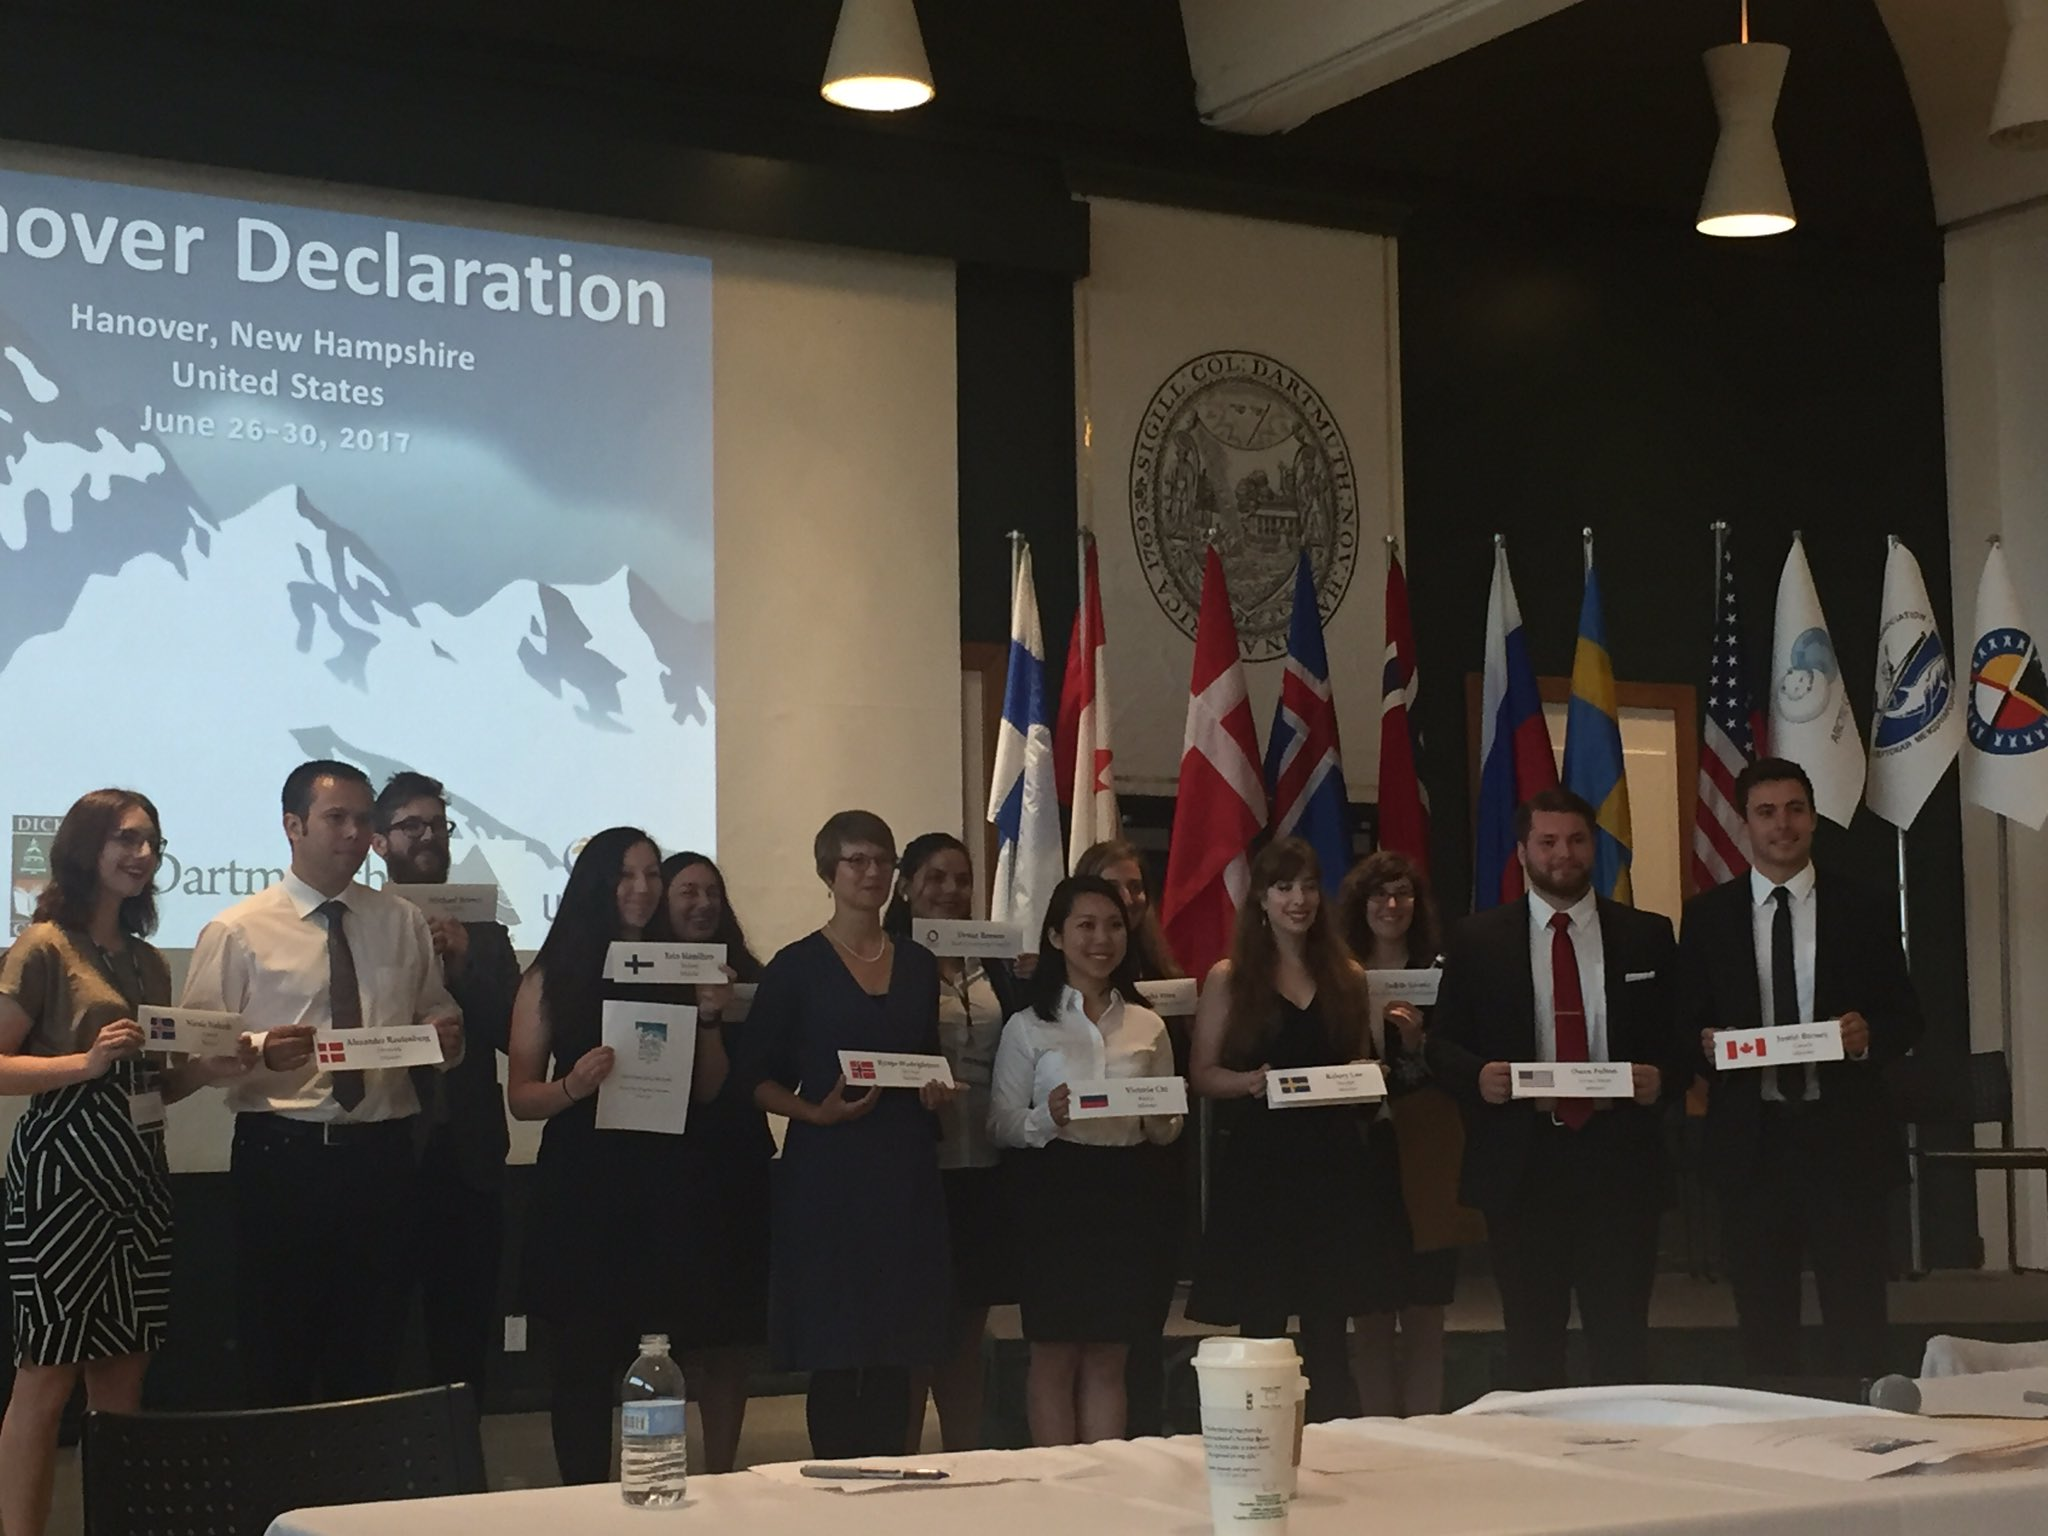 Could not have spent the week with a better or smarter group of people devoted to #arctic diplomacy #Dartscidip #dartmouth https://t.co/EhRxKkvuVr